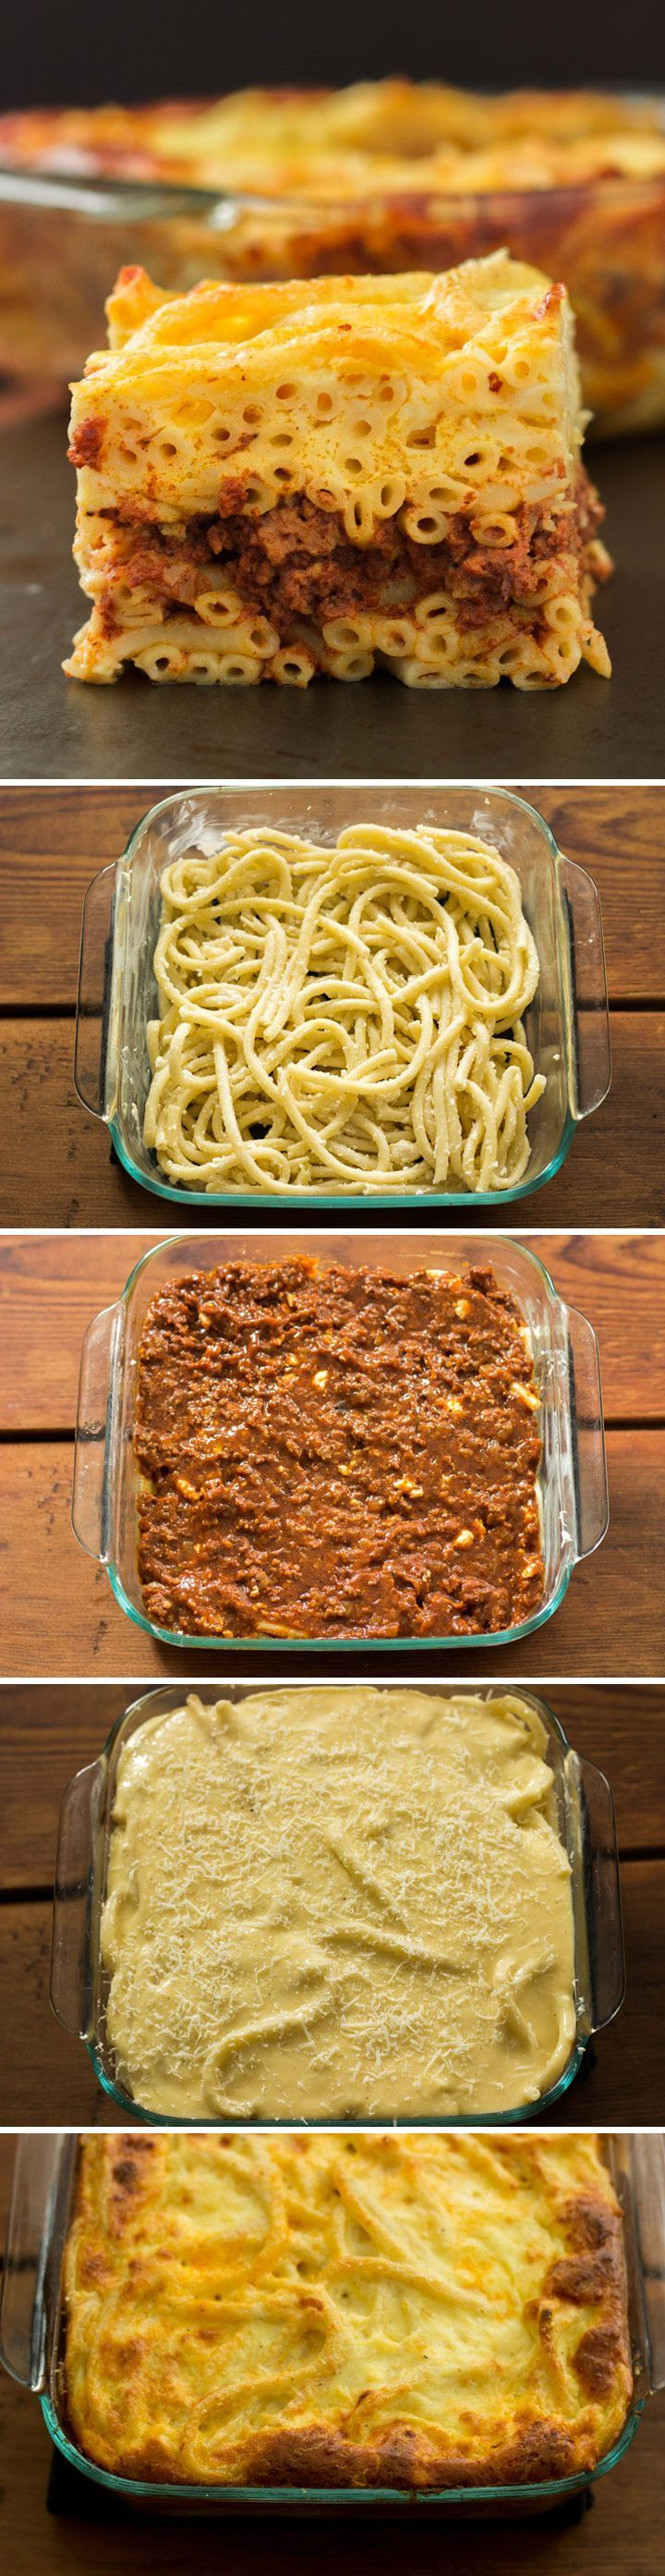 Classic Greek Pastitsio - Tired with regular old lasagna? Spice things up with pastitsio (pronounced pahs-TEET-see-o), the Greek version of lasagna. layered with pasta, meat sauce, spices, cheese, and bechamel.  #Recipe #Dinner #GreekFood